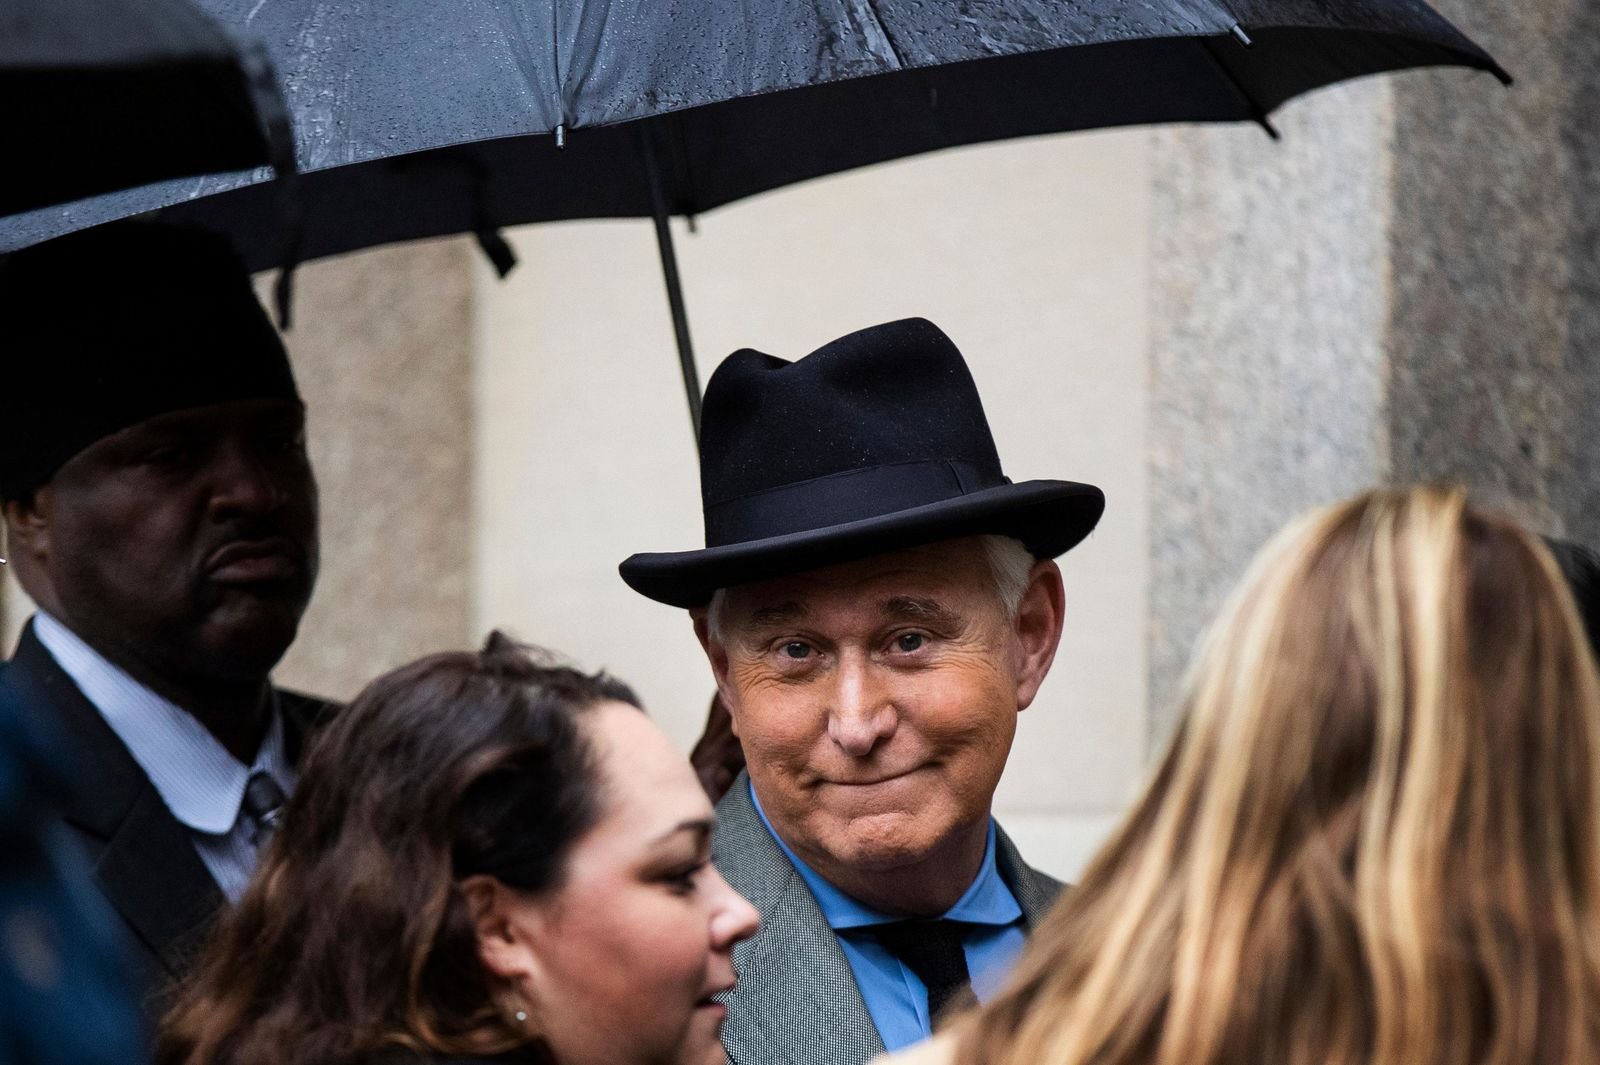 FILE - In this Nov. 12, 2019 file photo, Roger Stone, a longtime Republican provocateur and former confidant of President Donald Trump, waits in line at the federal court in Washington. (AP Photo/Manuel Balce Ceneta)